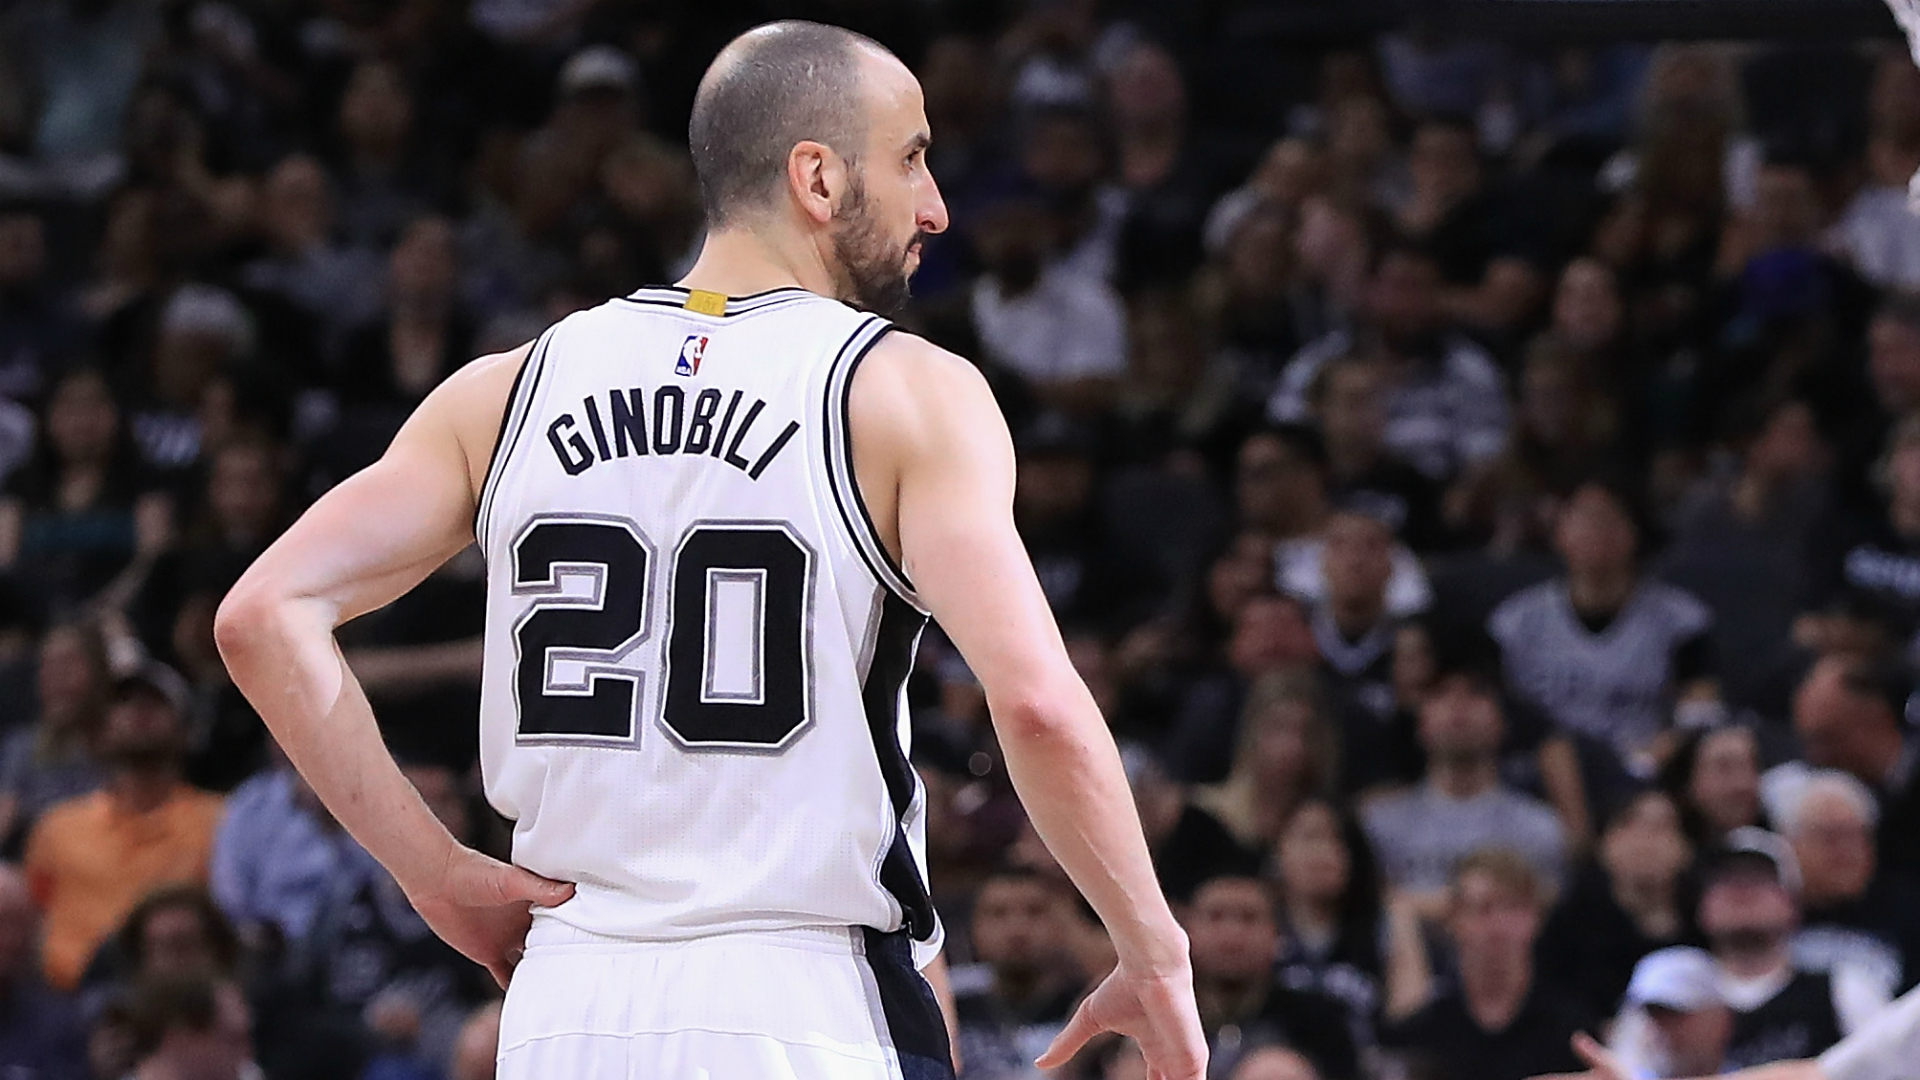 reputable site 8a801 362bb Spurs to retire Manu Ginobili's No. 20 jersey | Sporting News